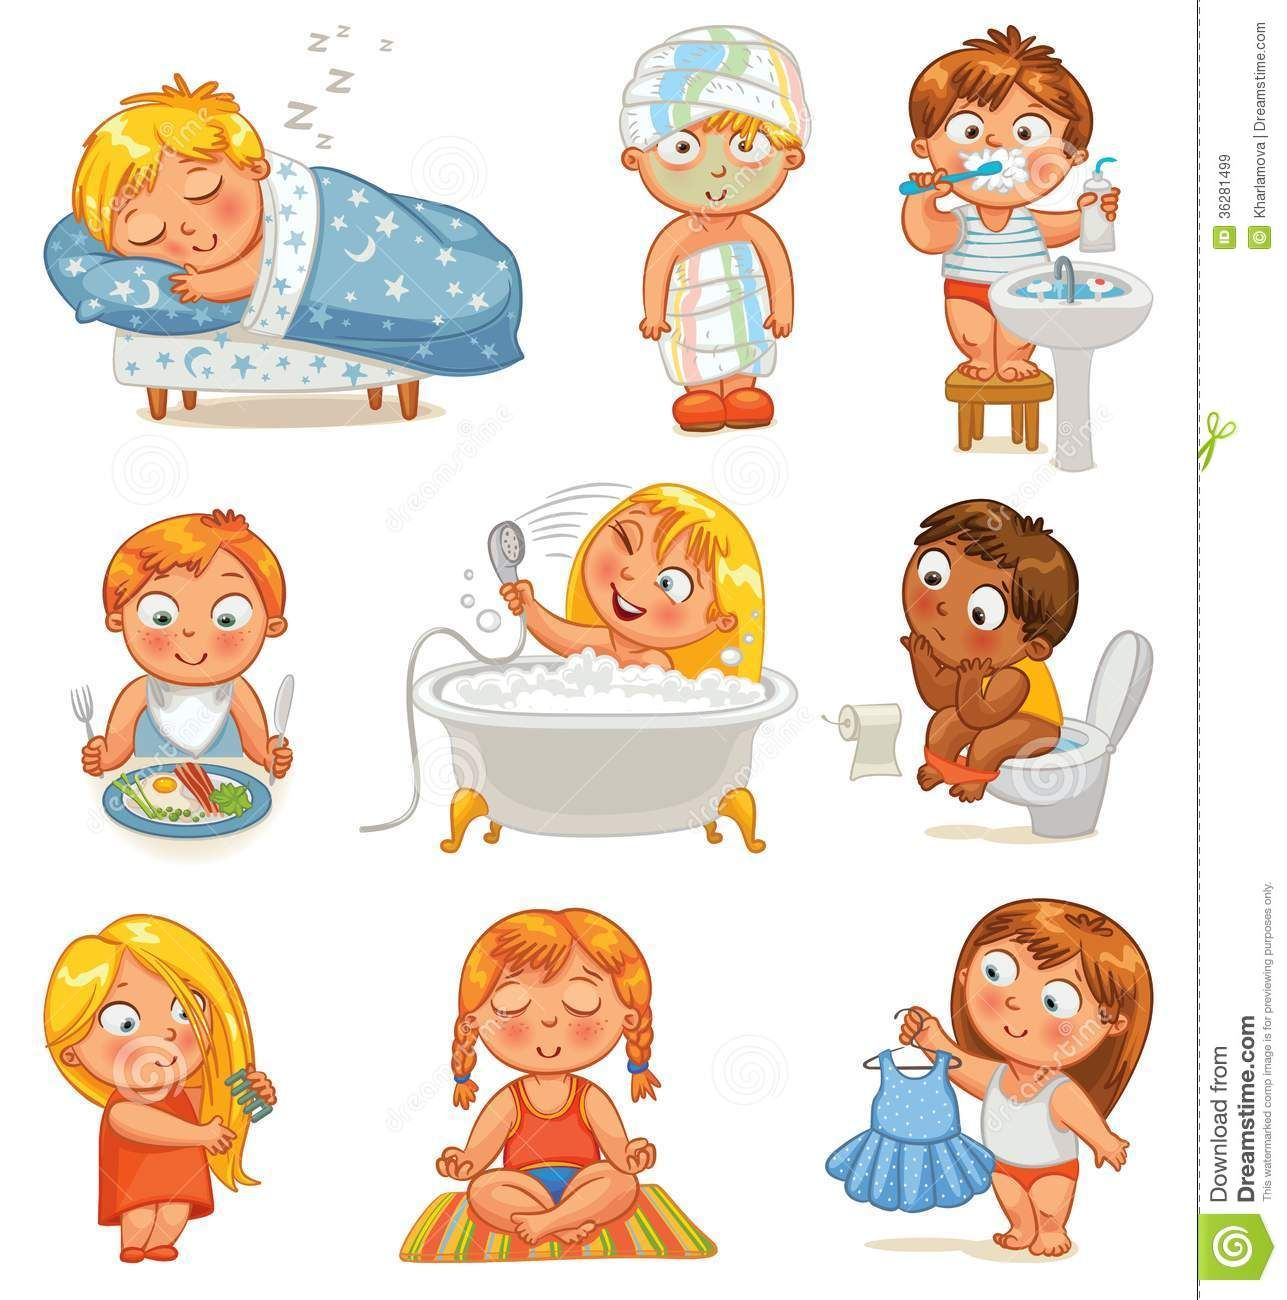 Activities clipart baby. Pin by goldline on